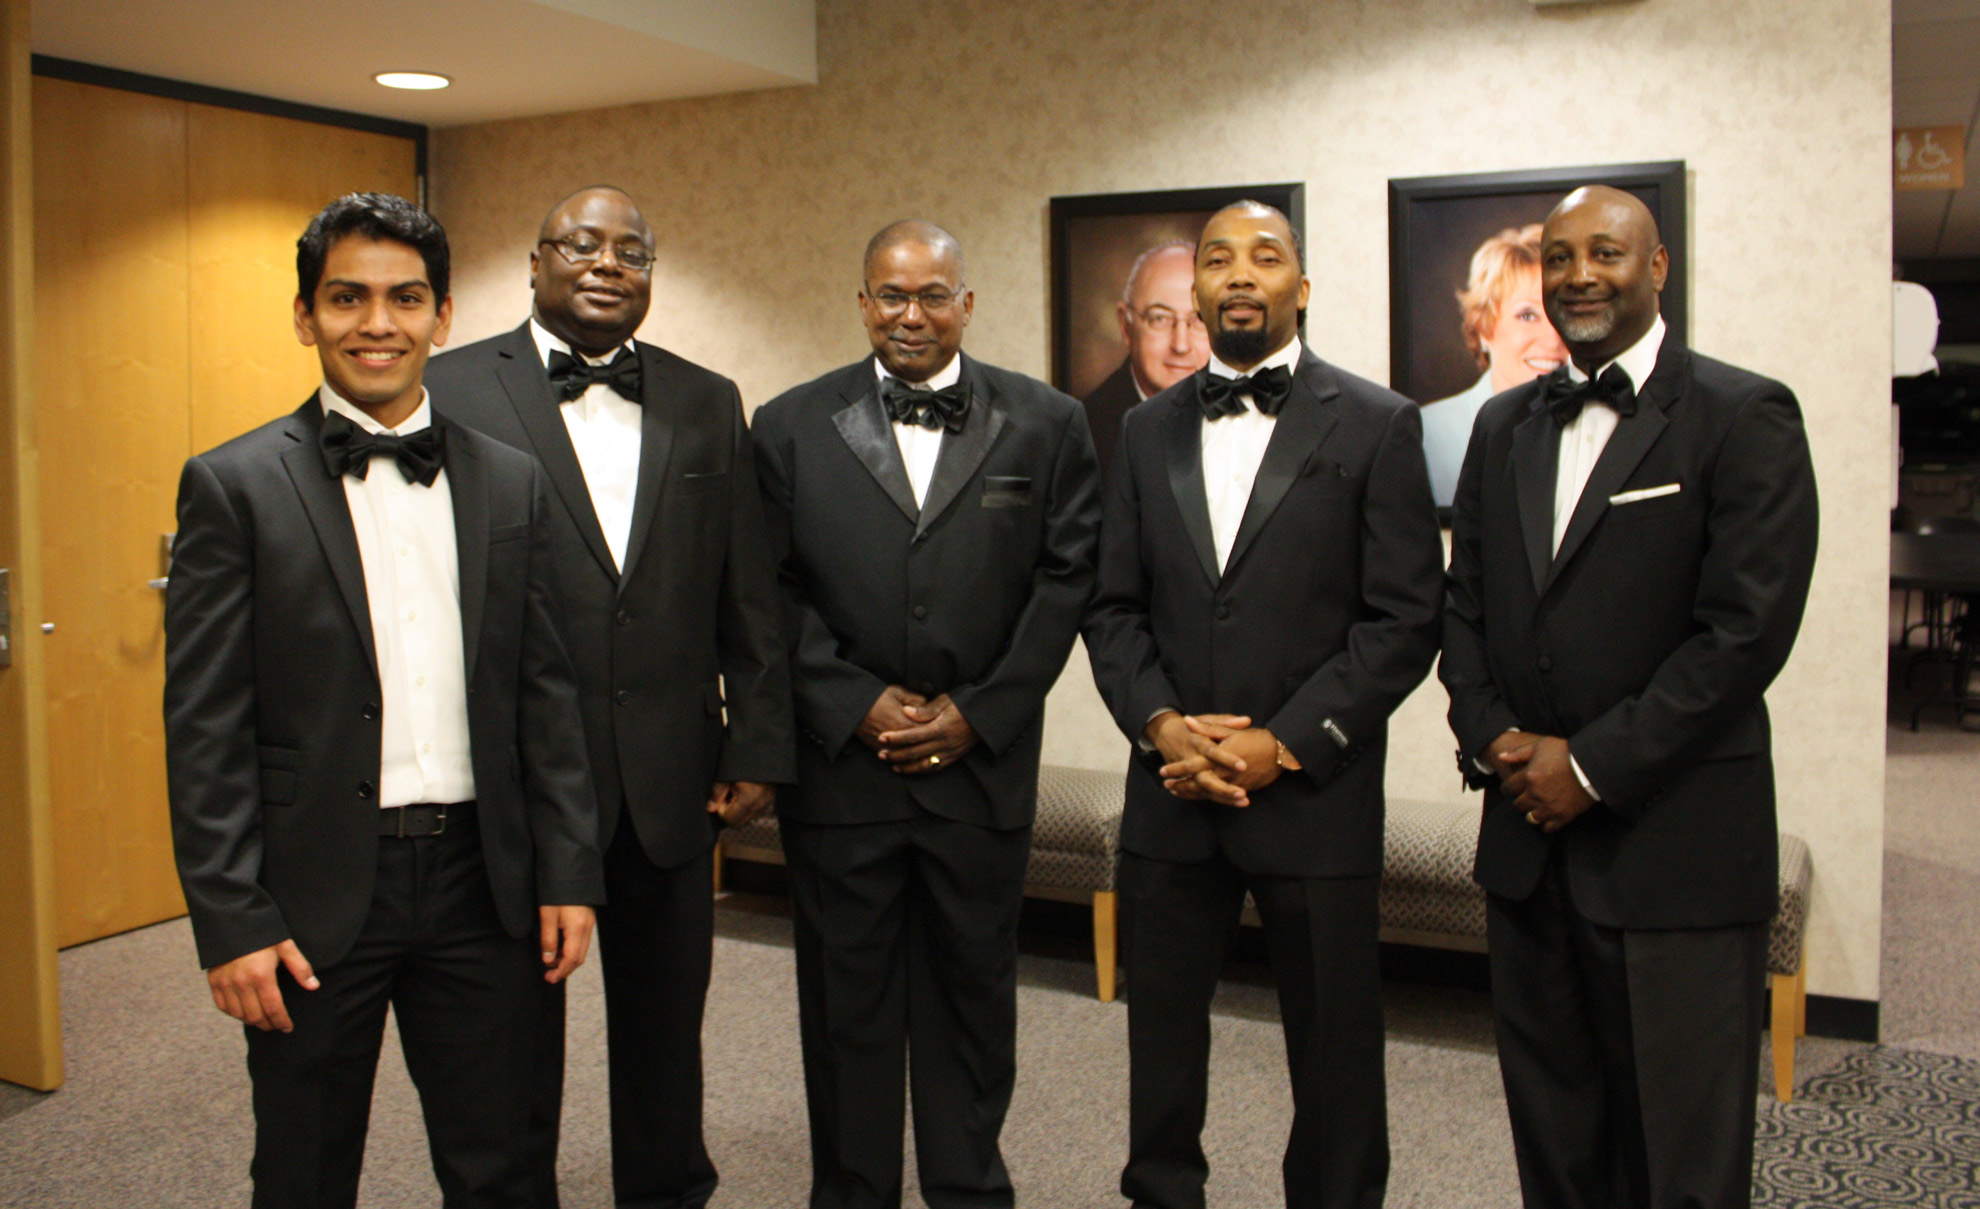 Five men in tuxedos